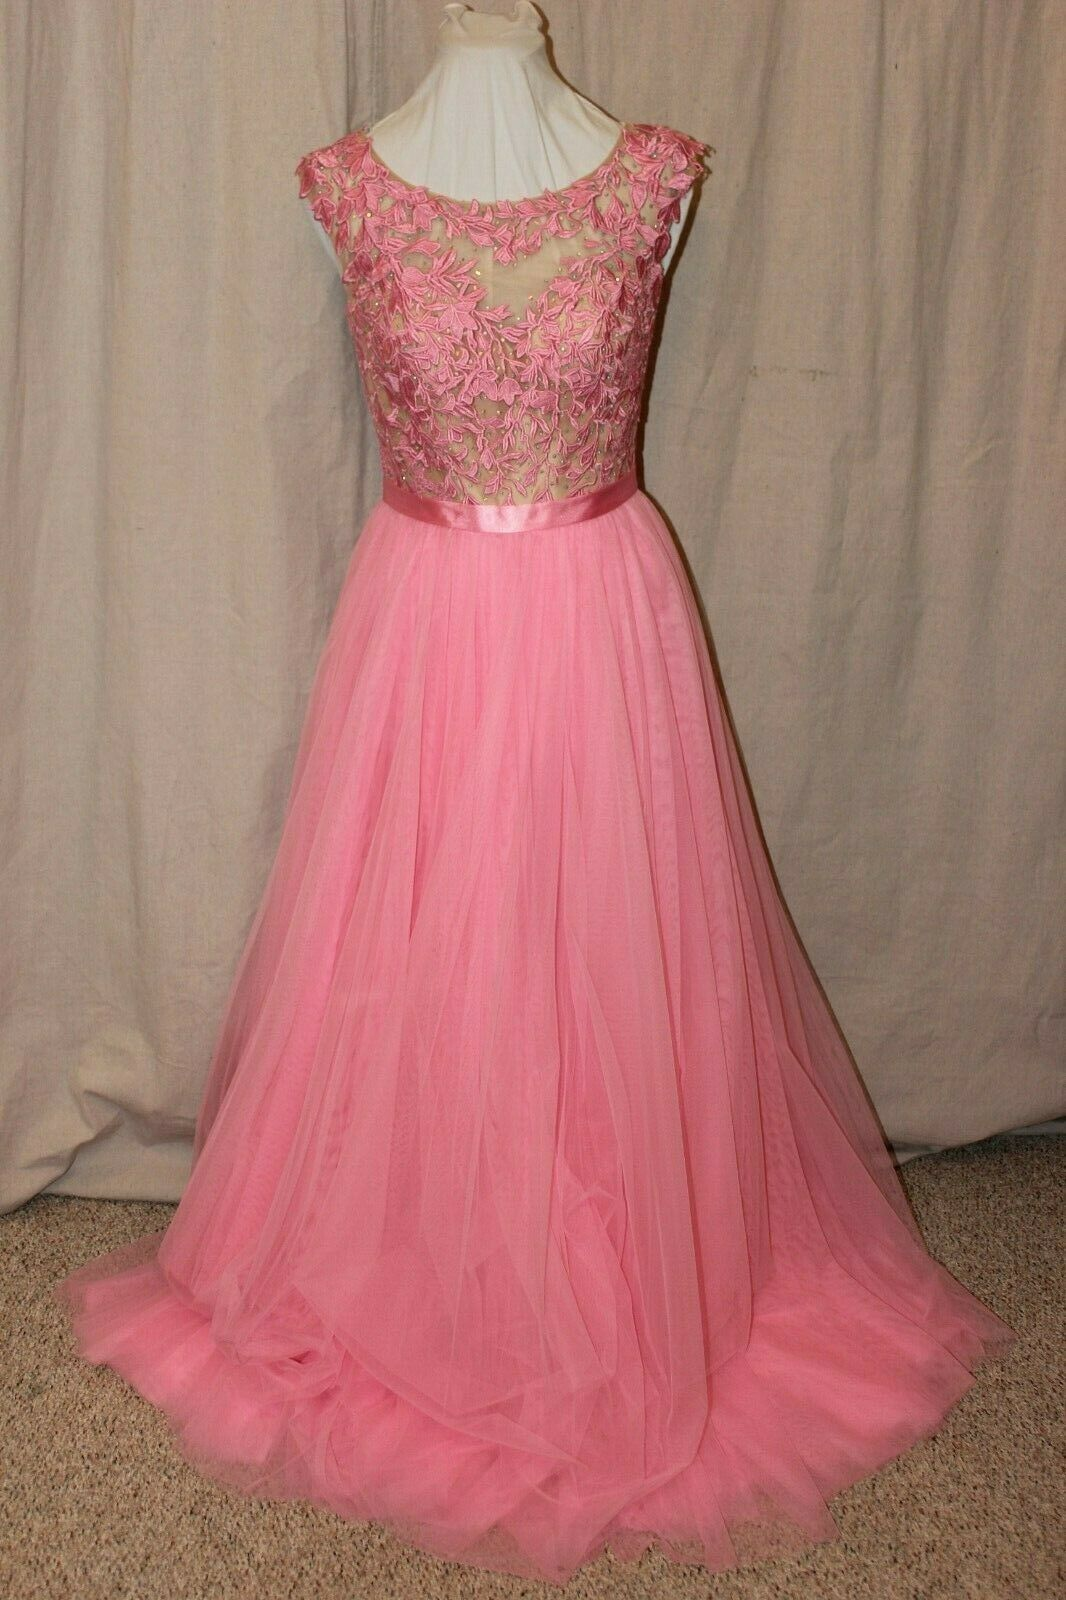 NWT Size 8 Sherri Hill 51638 Nude/Pink rhinestone tulle formal PROM GOWN